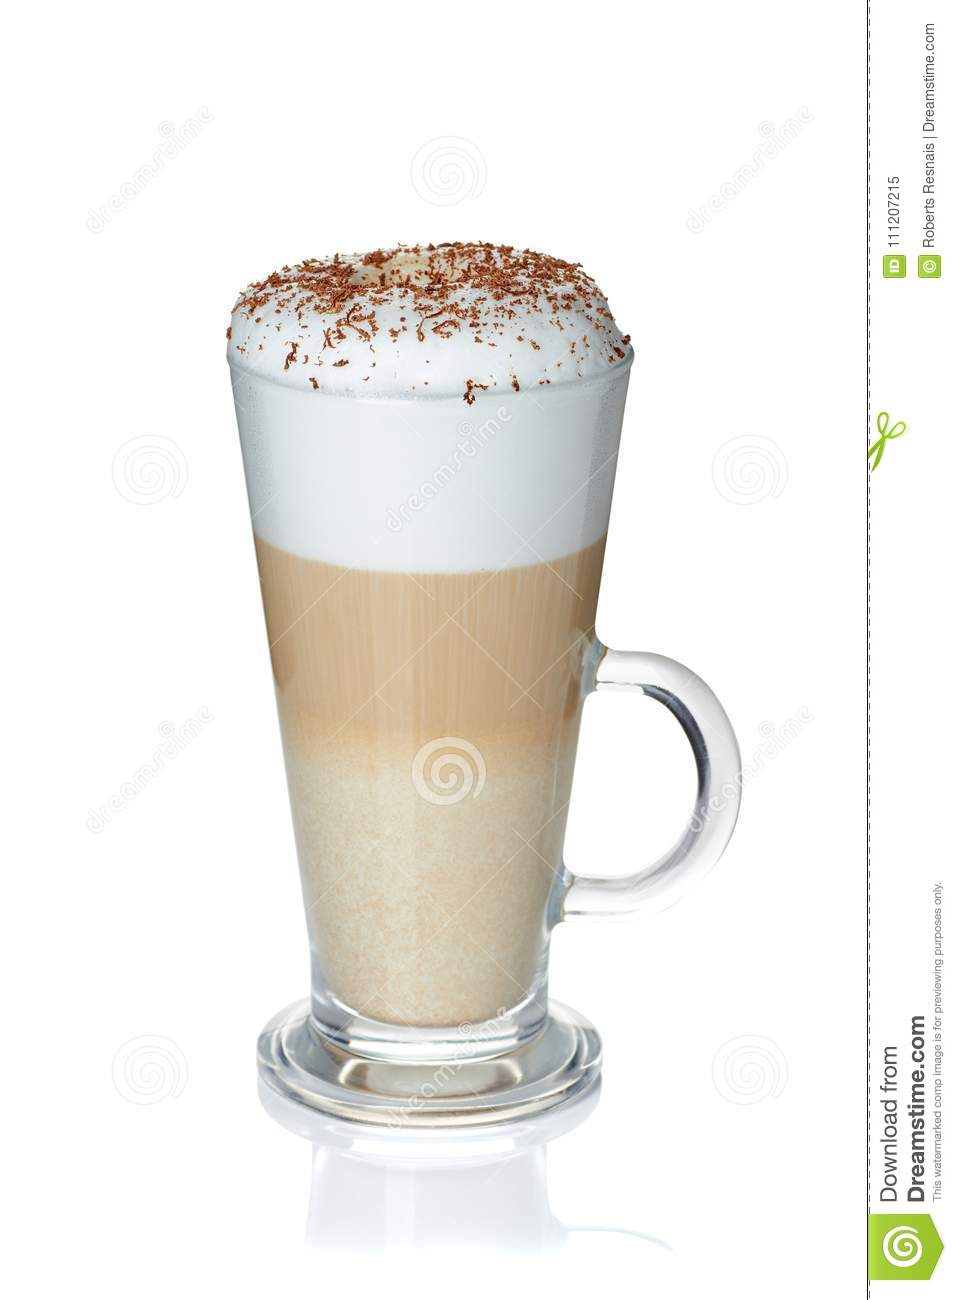 Glass cup of coffee latte on white